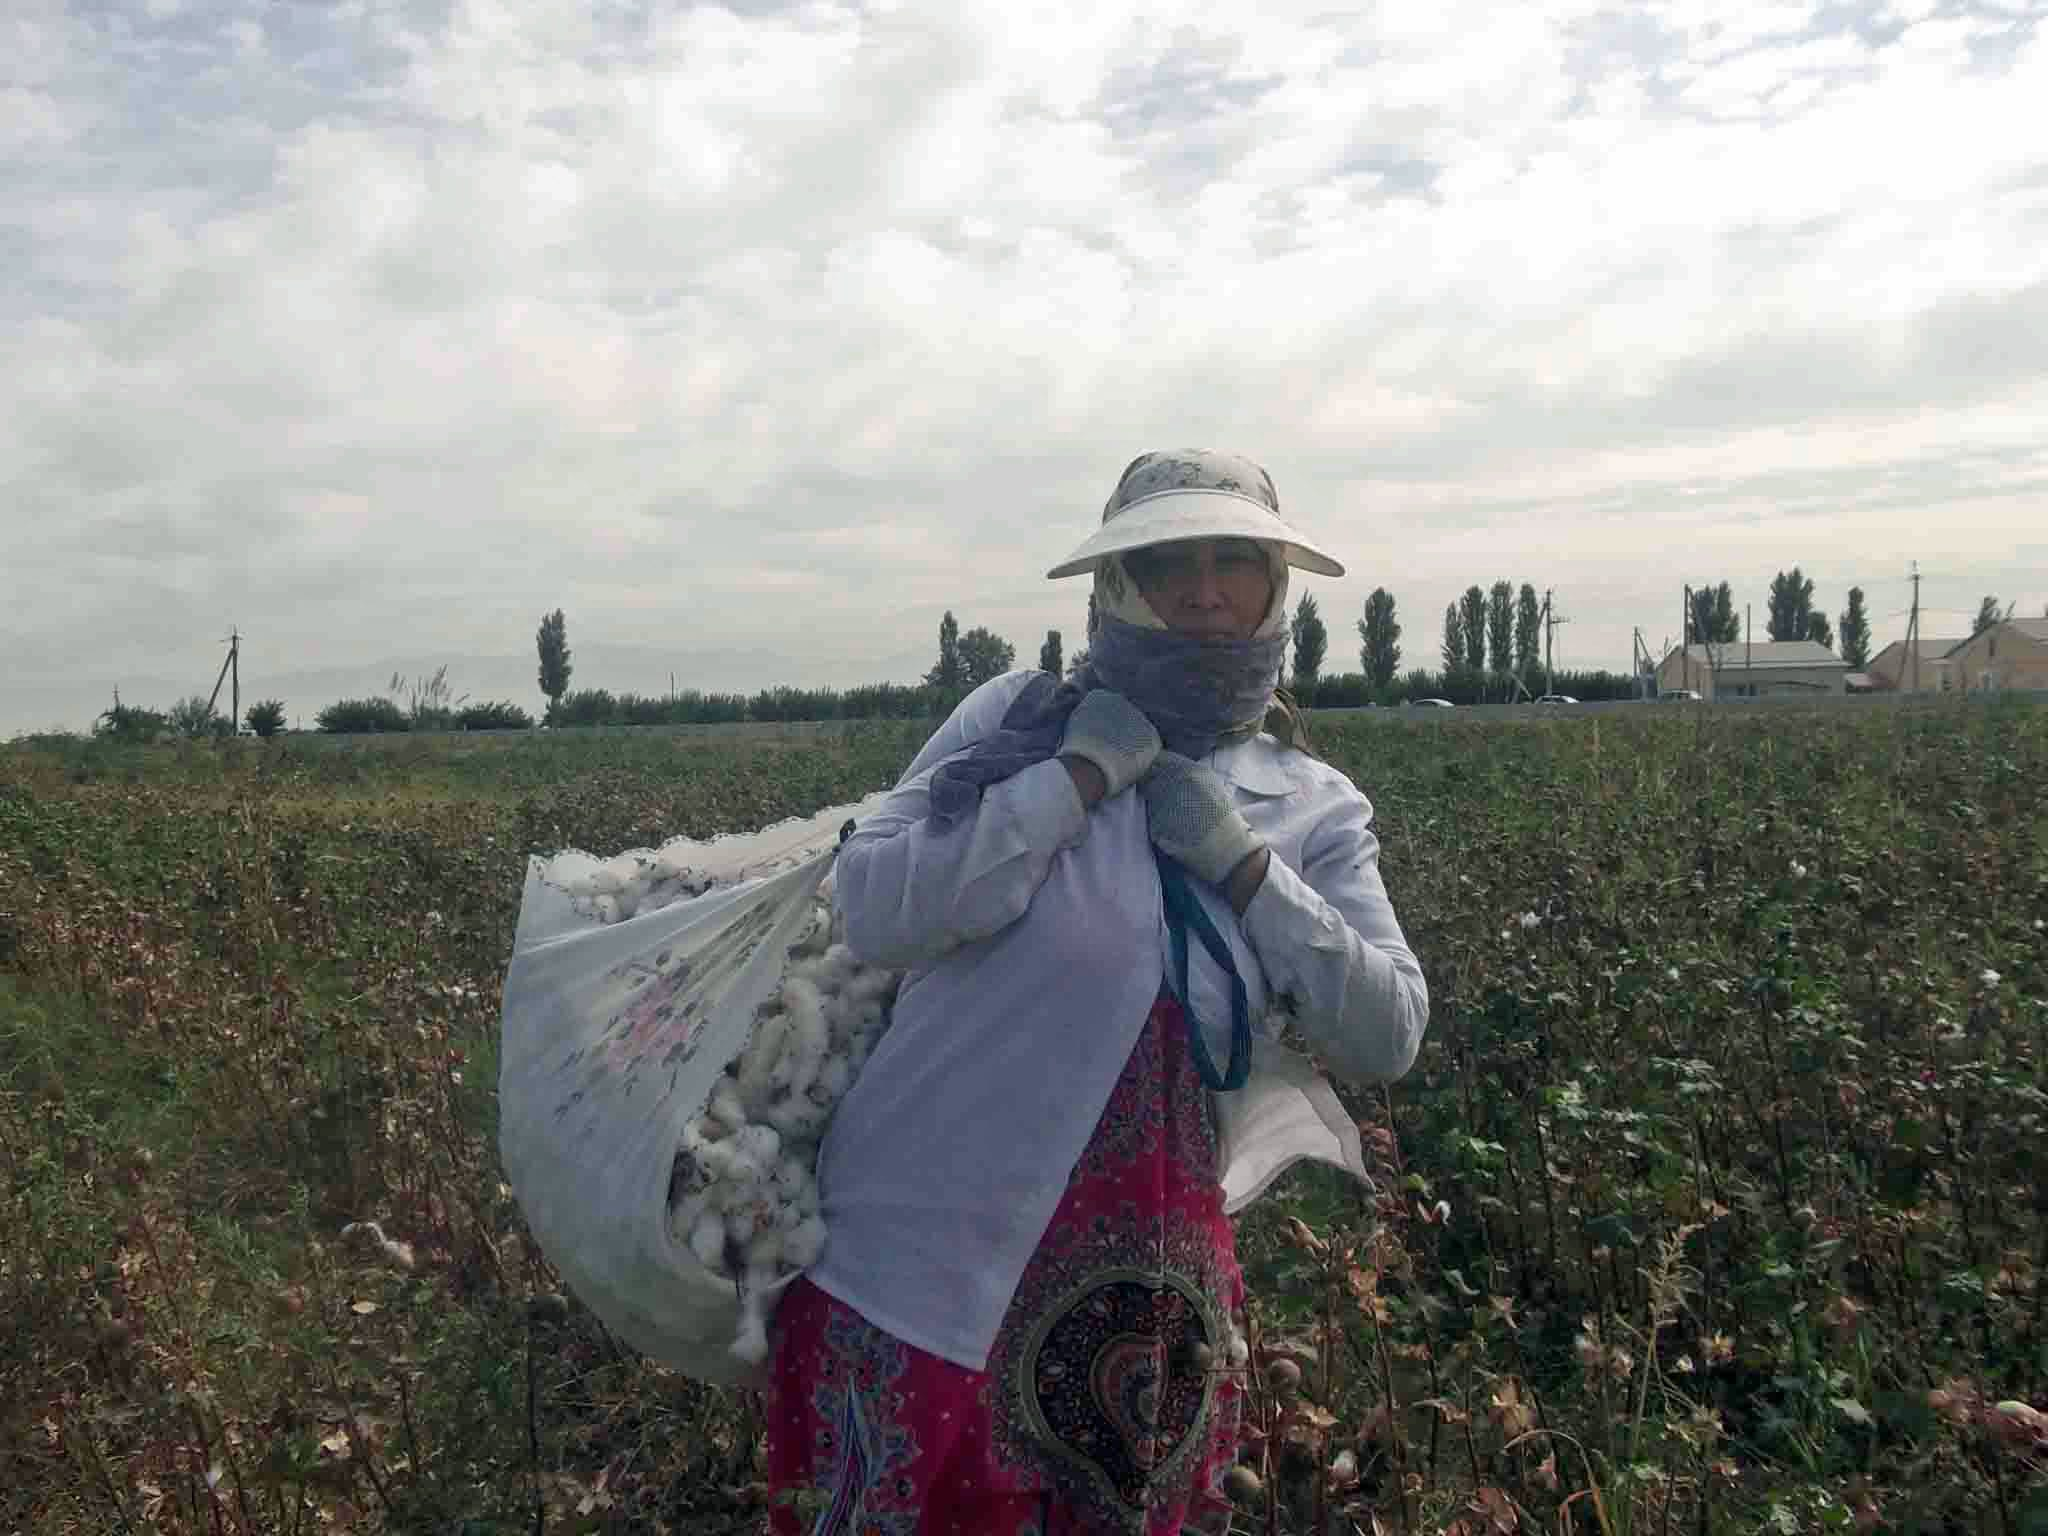 Ban Ki-moon: Uzbekistan Must Do More to End Forced Labor